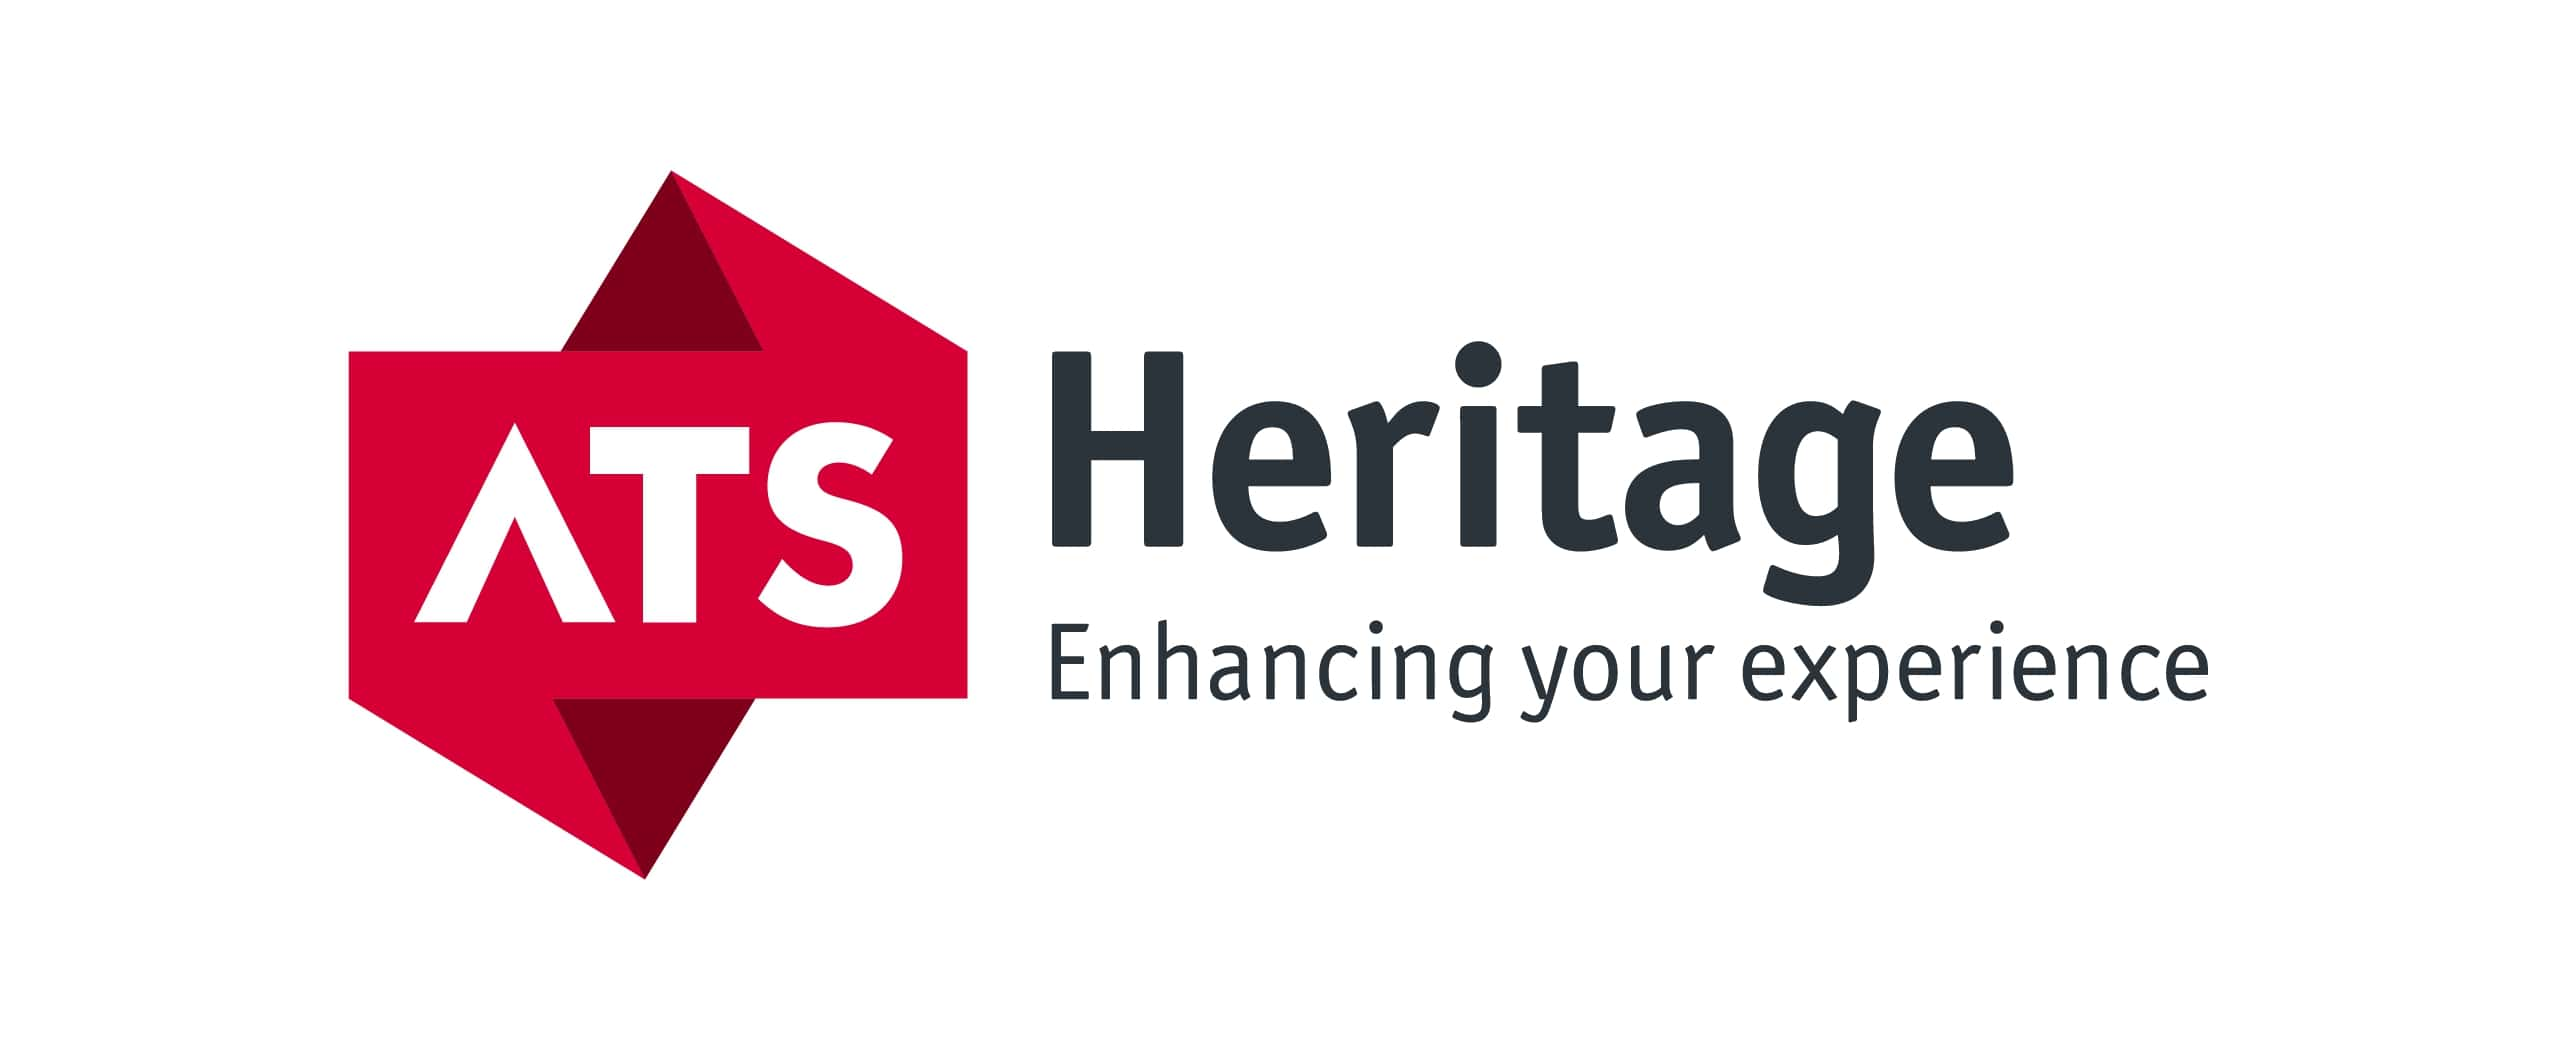 Image showing ATS Heritage